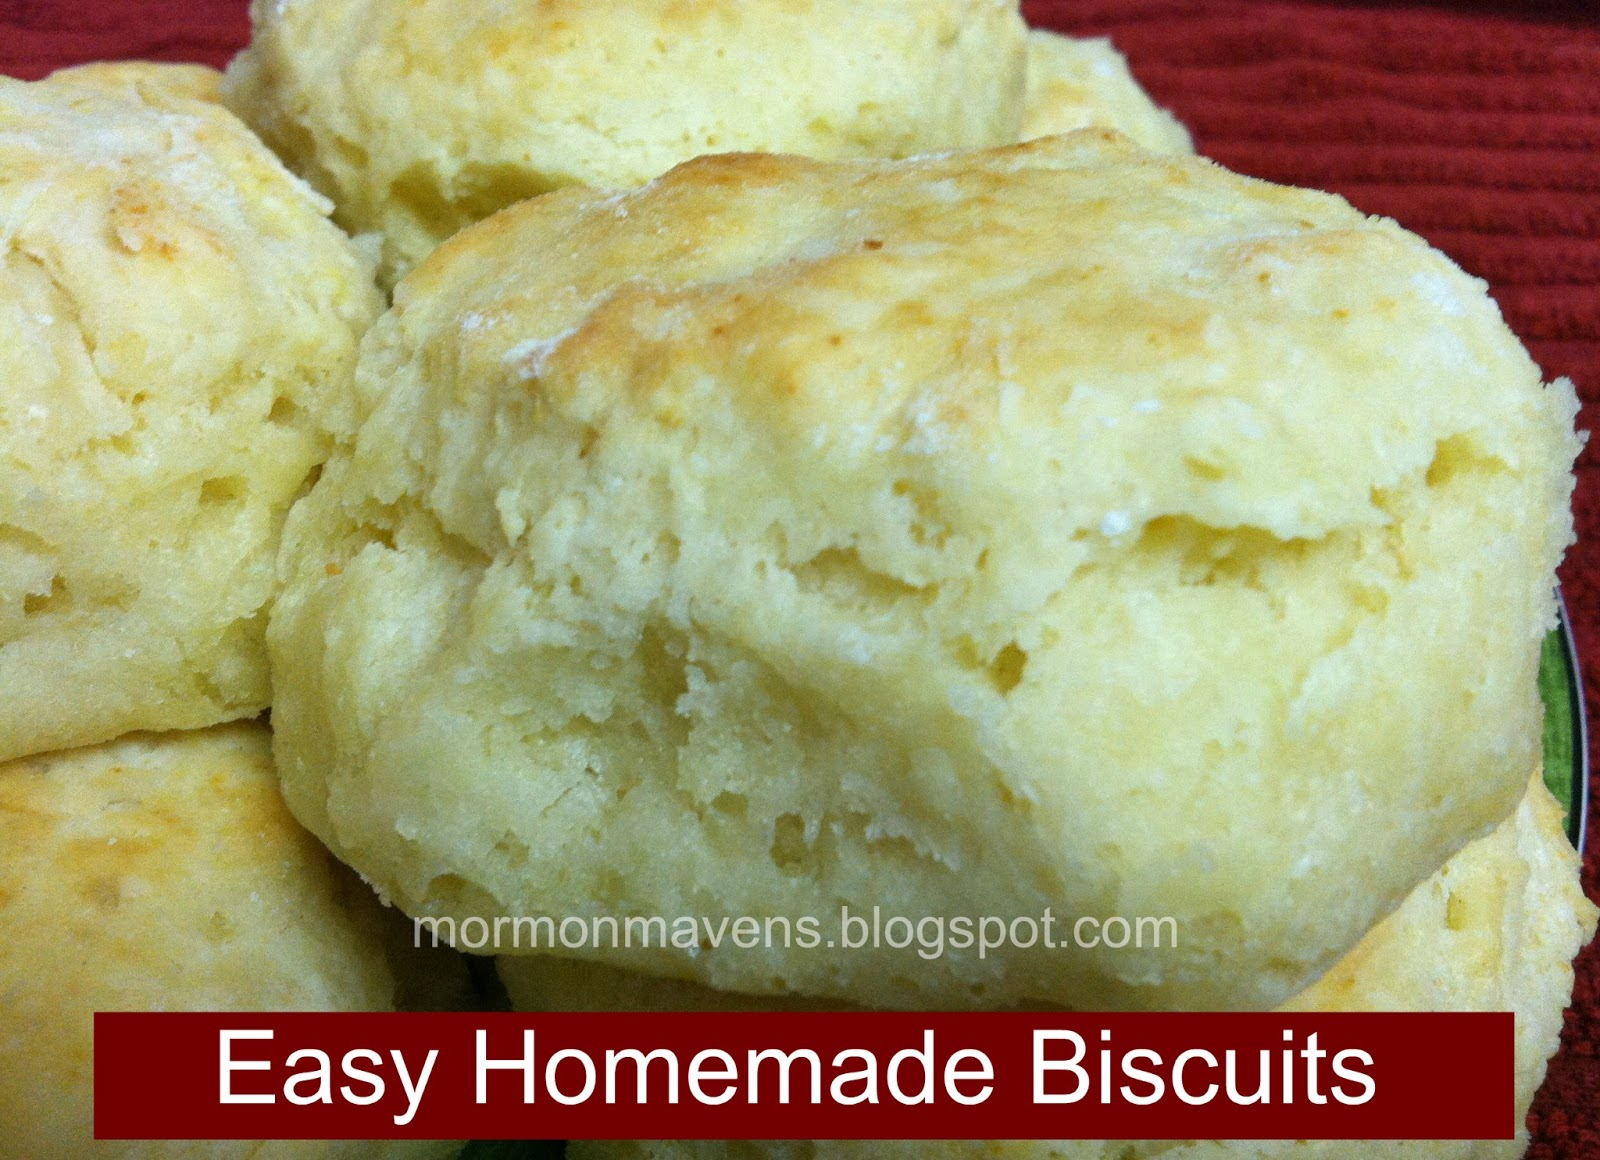 Homemade Biscuits 14